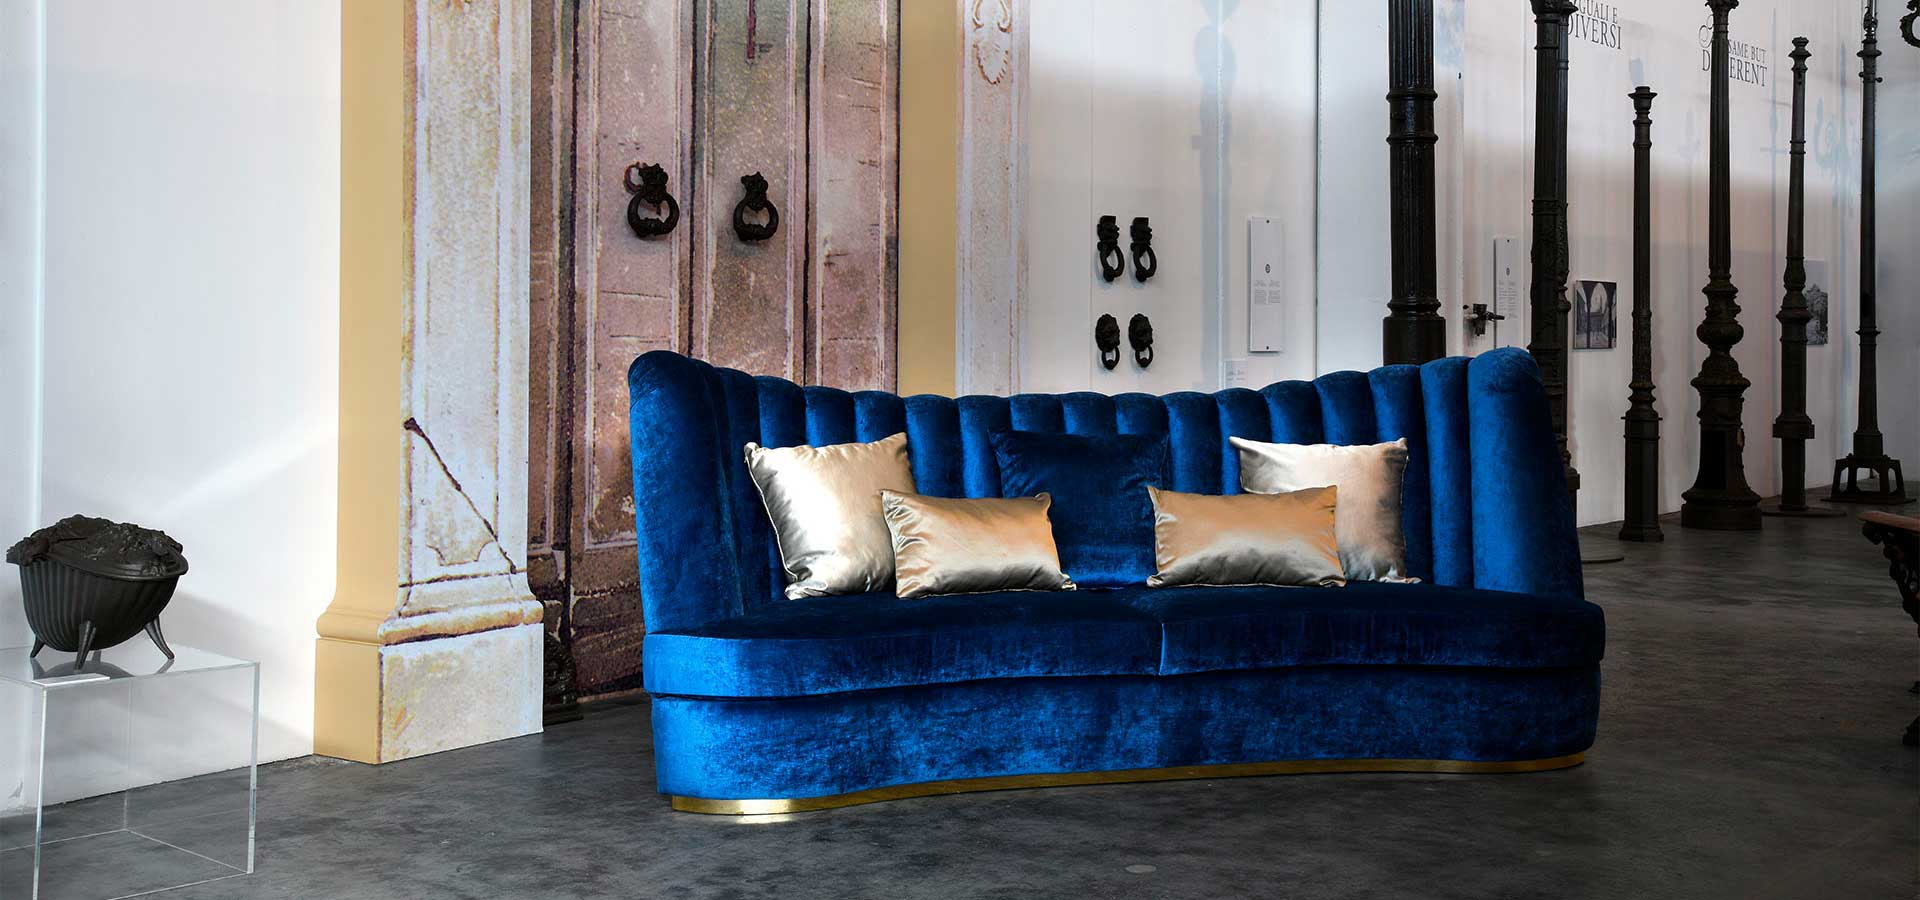 Contract_CollezioneDesignItalianoCollectionitalianDesign_THALIA-BLU-AMB_1176